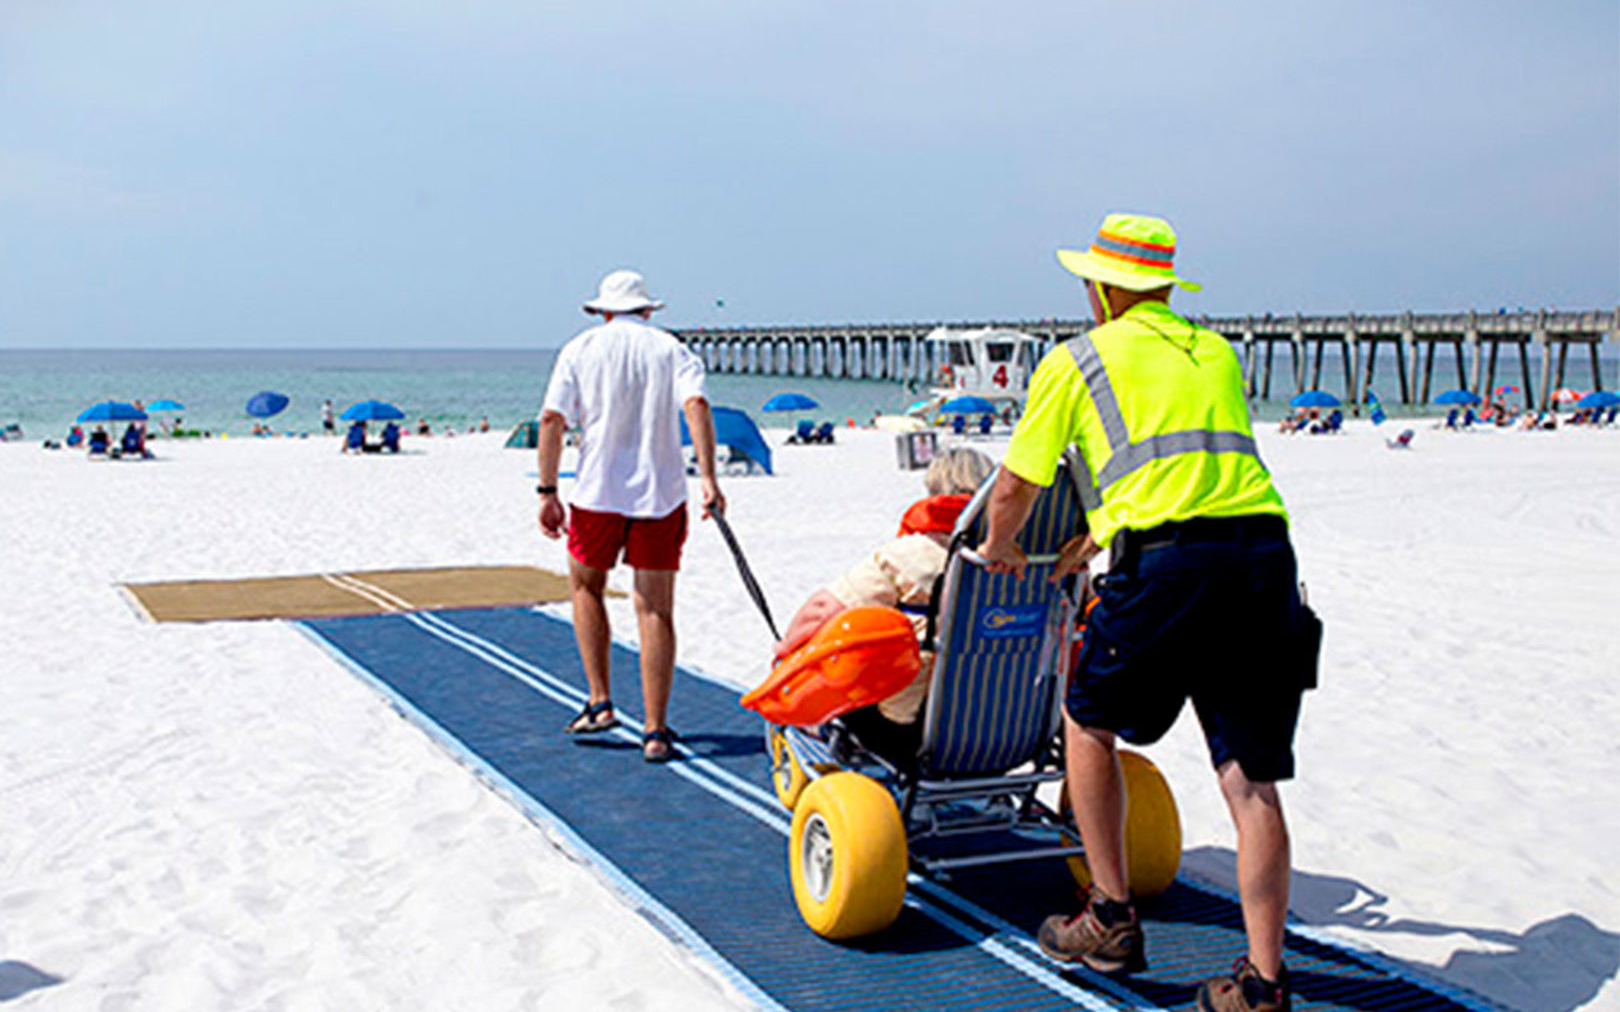 Pensacola Beaches Are Now Accessible to People in Wheelchairs